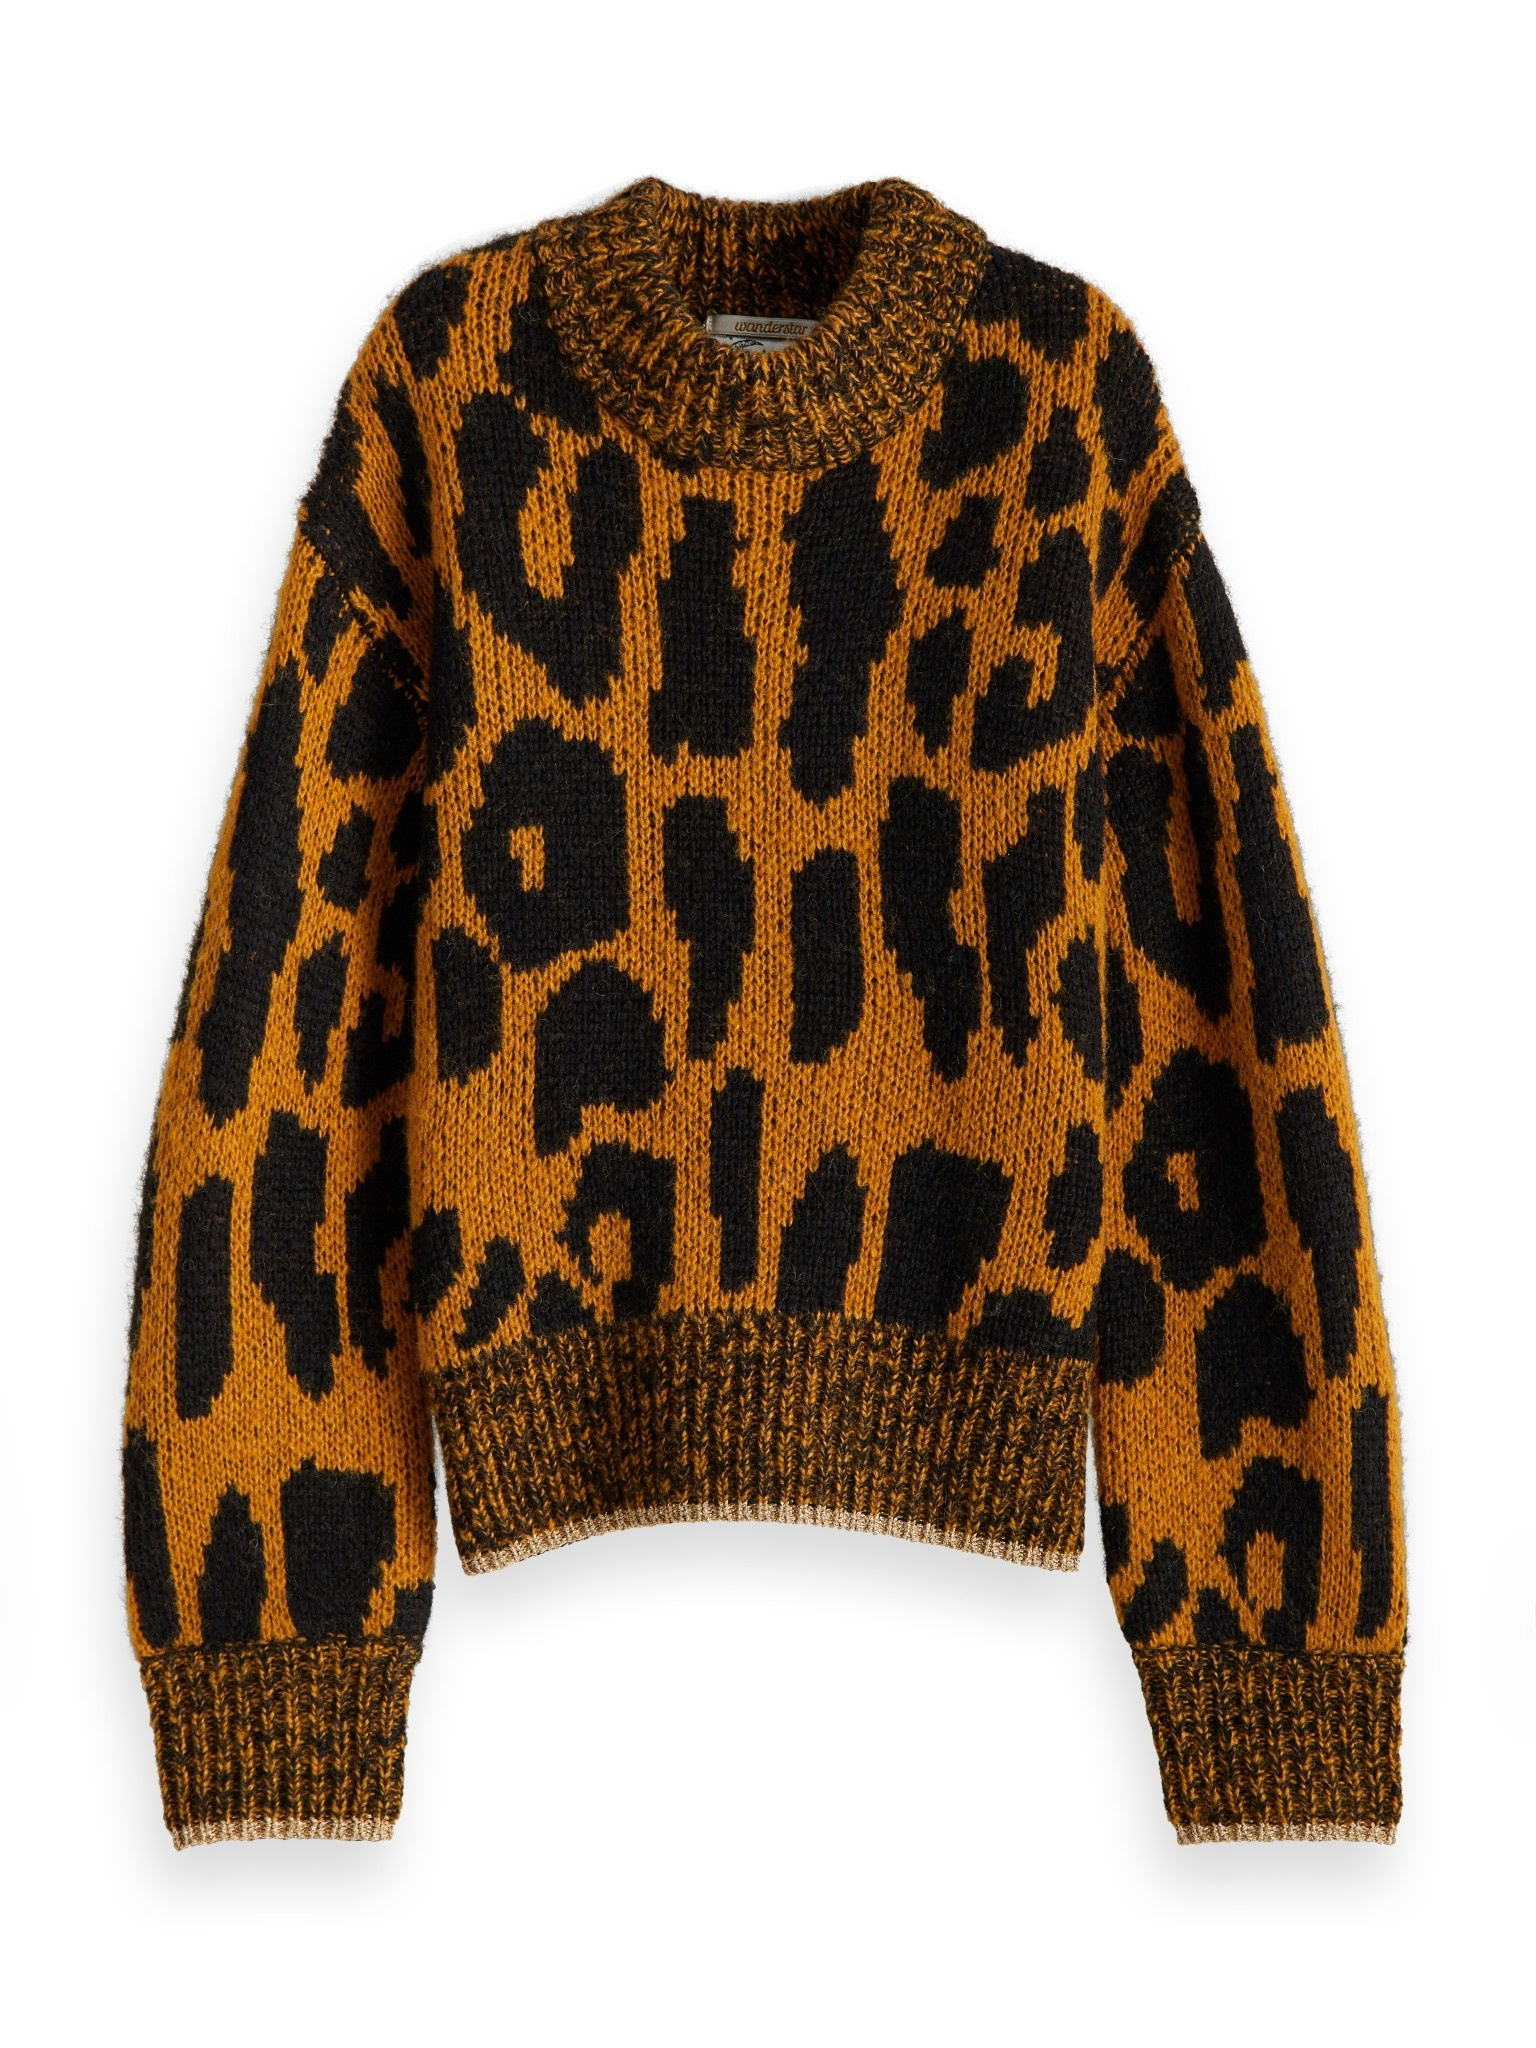 Scotch Rbelle Scotch - Knit with sleeves chunky leopard 0591, 158152